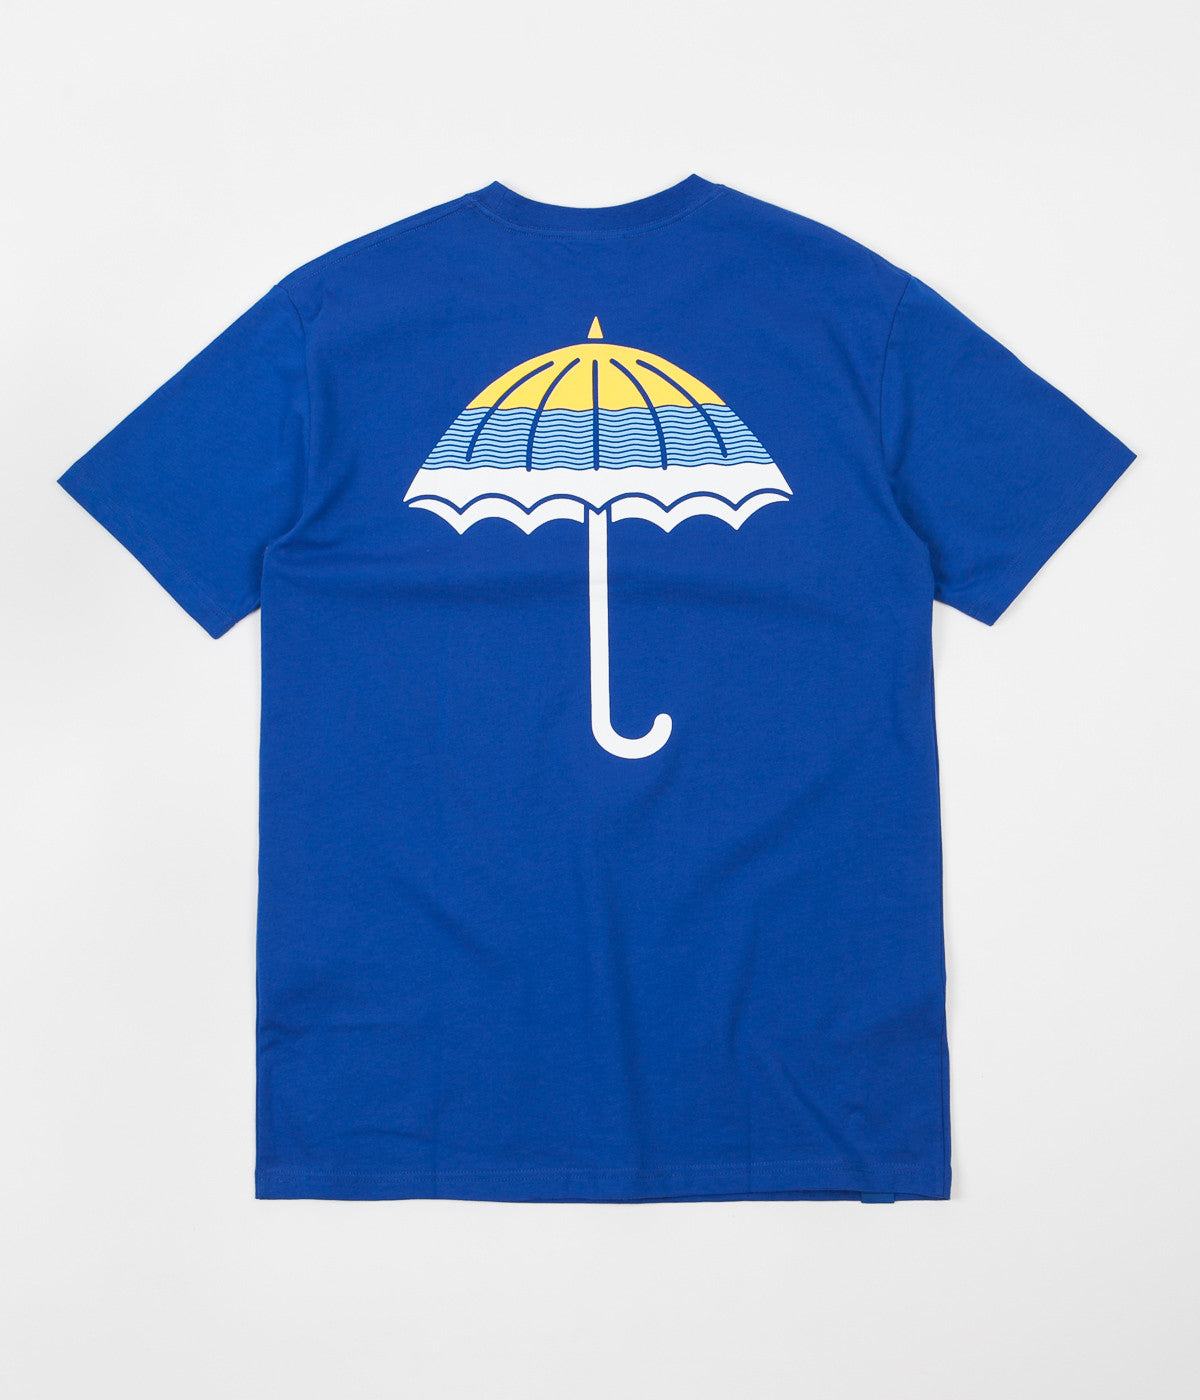 Helas Wavy Umbrella T-Shirt - Blue